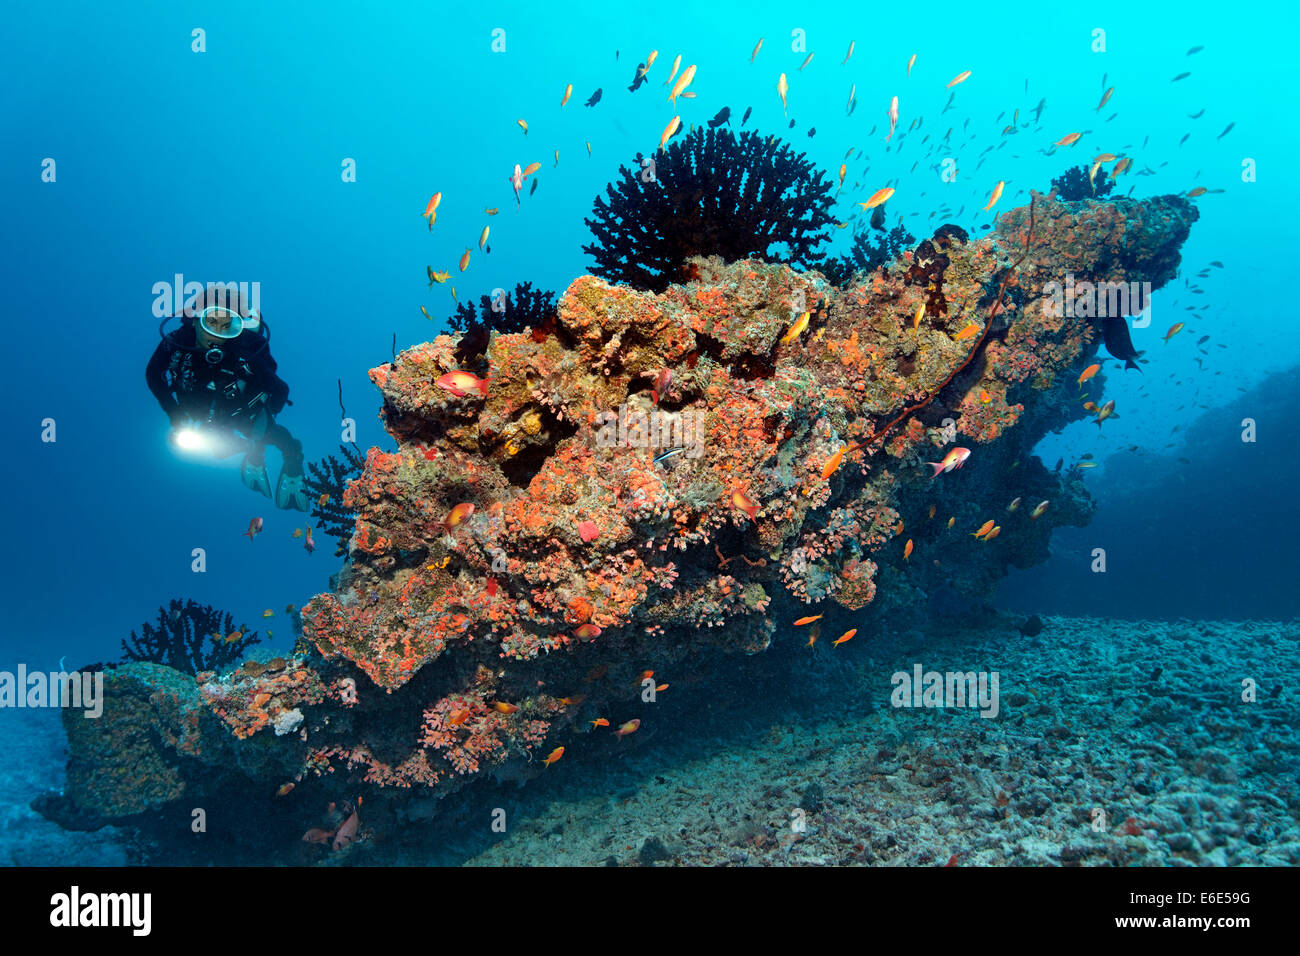 Scuba diver looking at a small coral reef with Black Sun Corals (Tubastrea micranthus), and Orange Cup Corals (Dendrophyllia - Stock Image